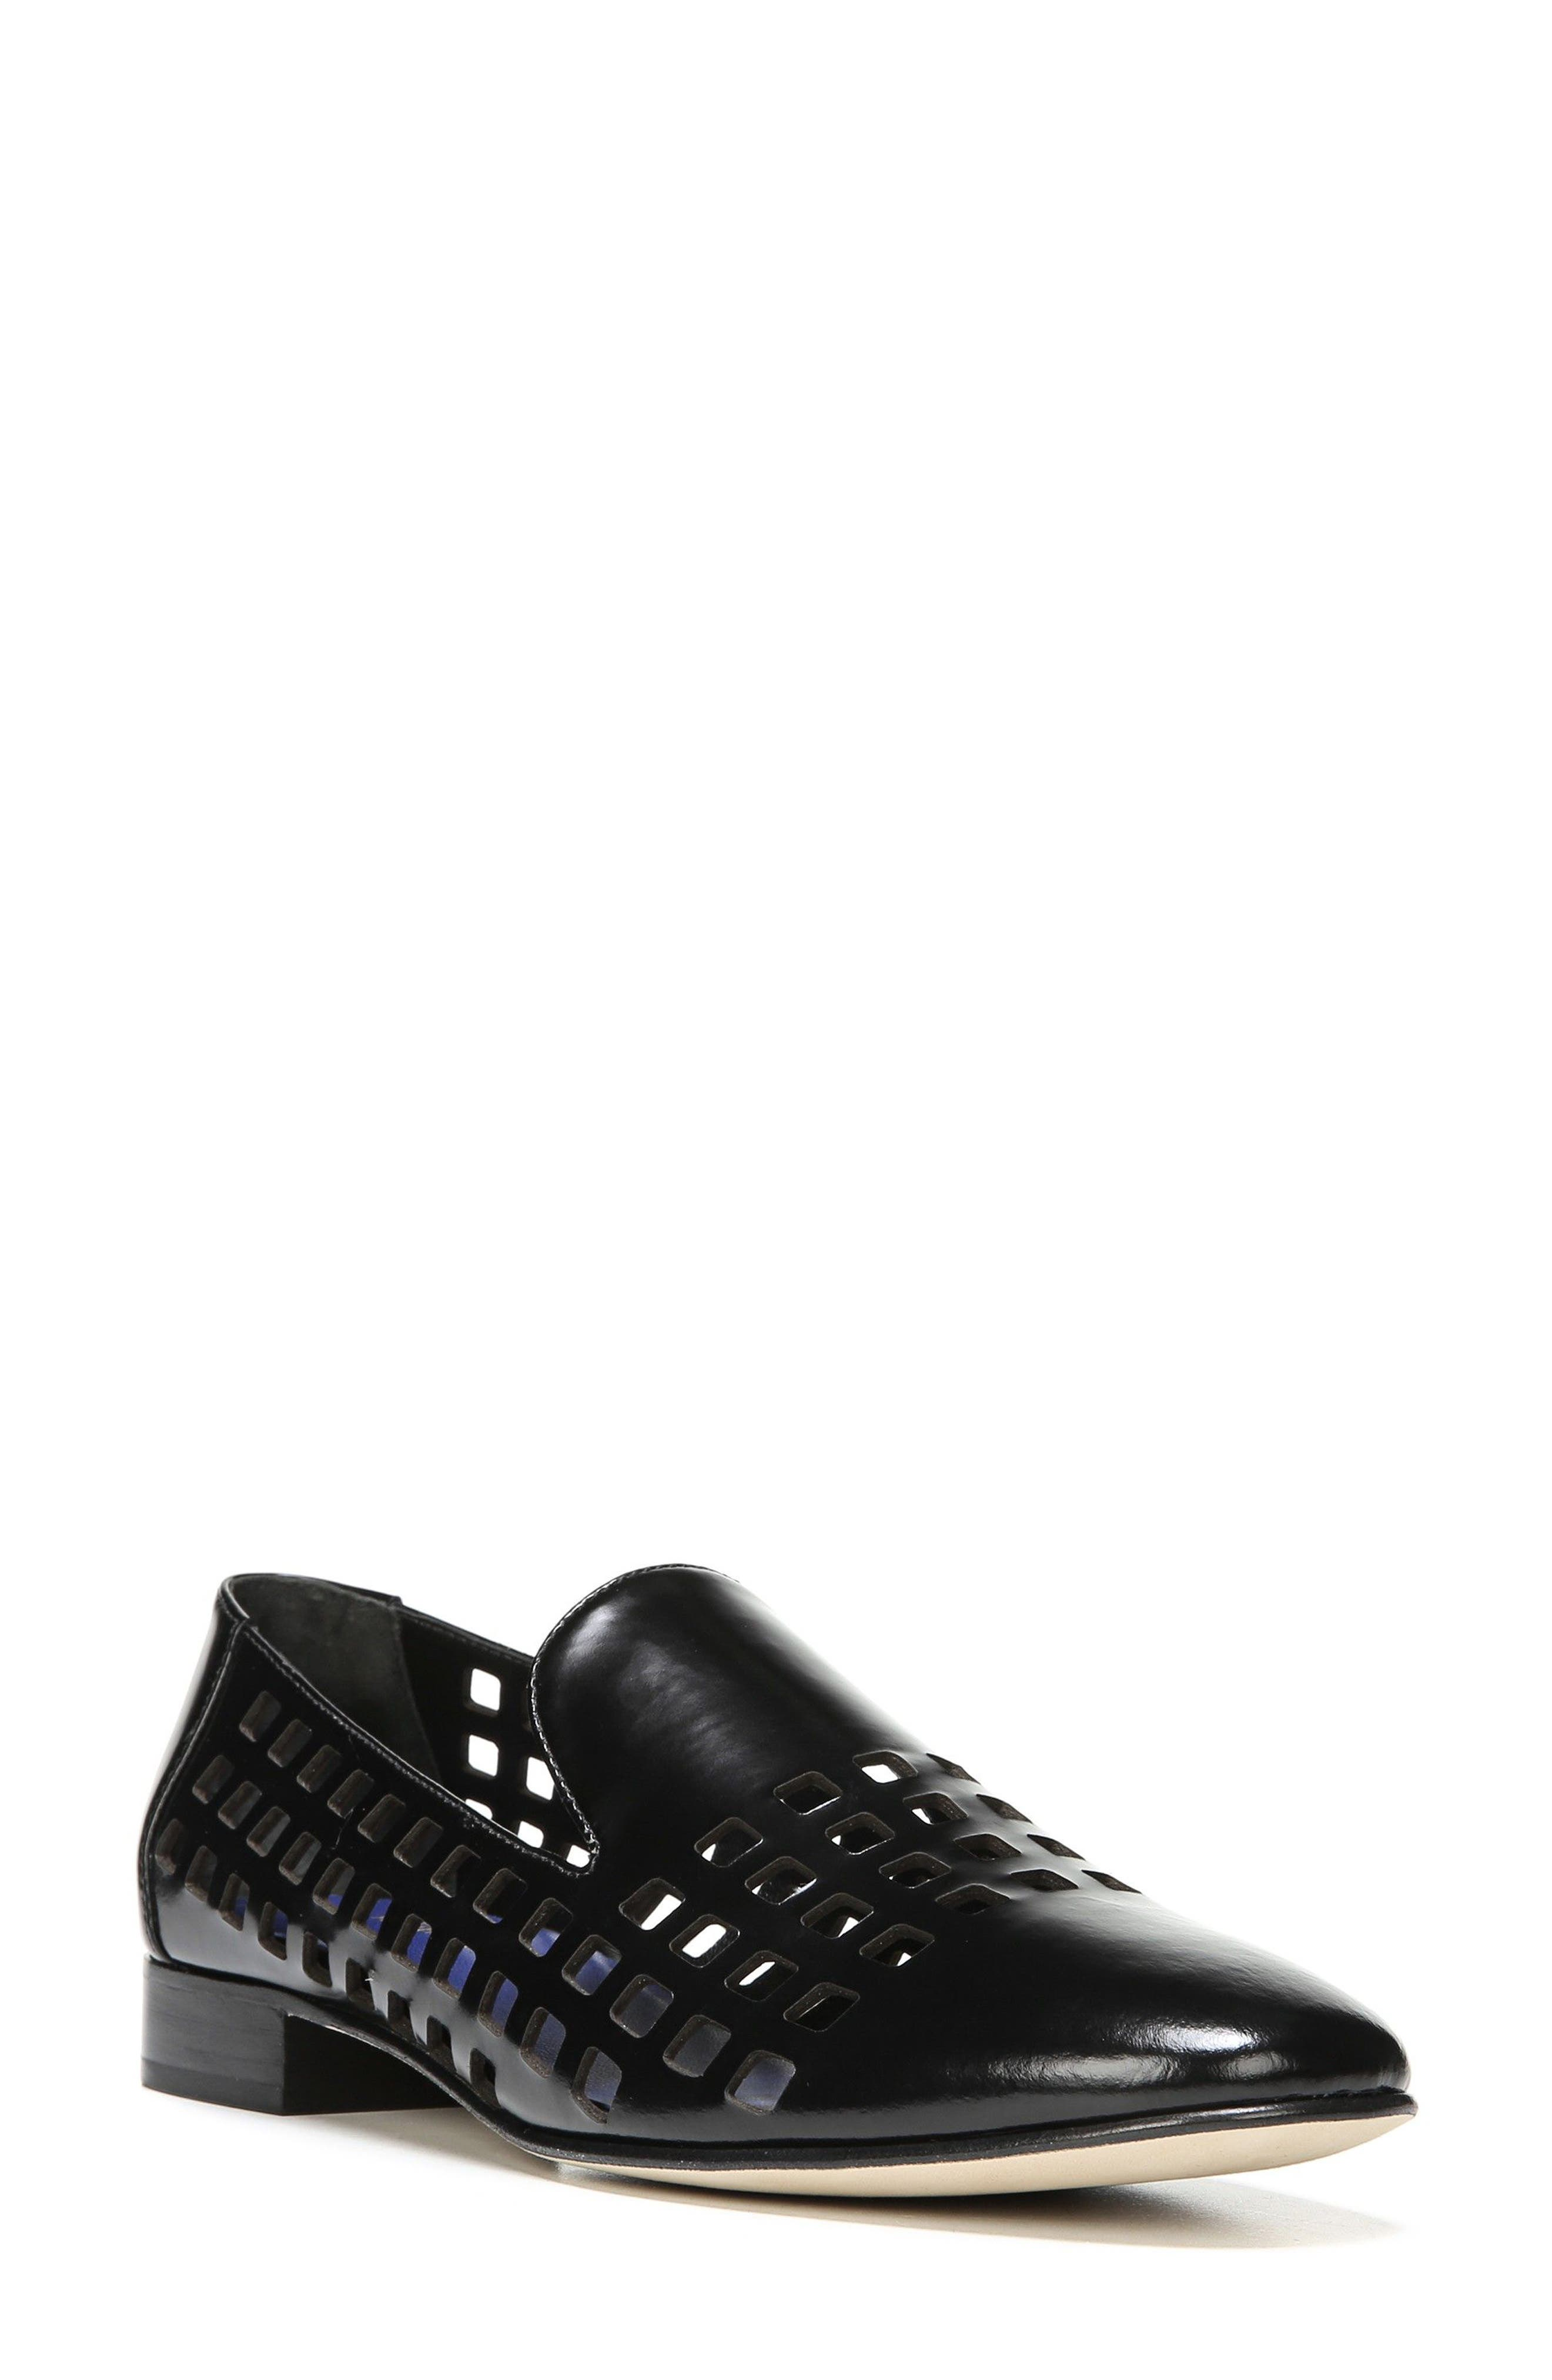 Linz Perforated Loafer,                             Main thumbnail 1, color,                             001